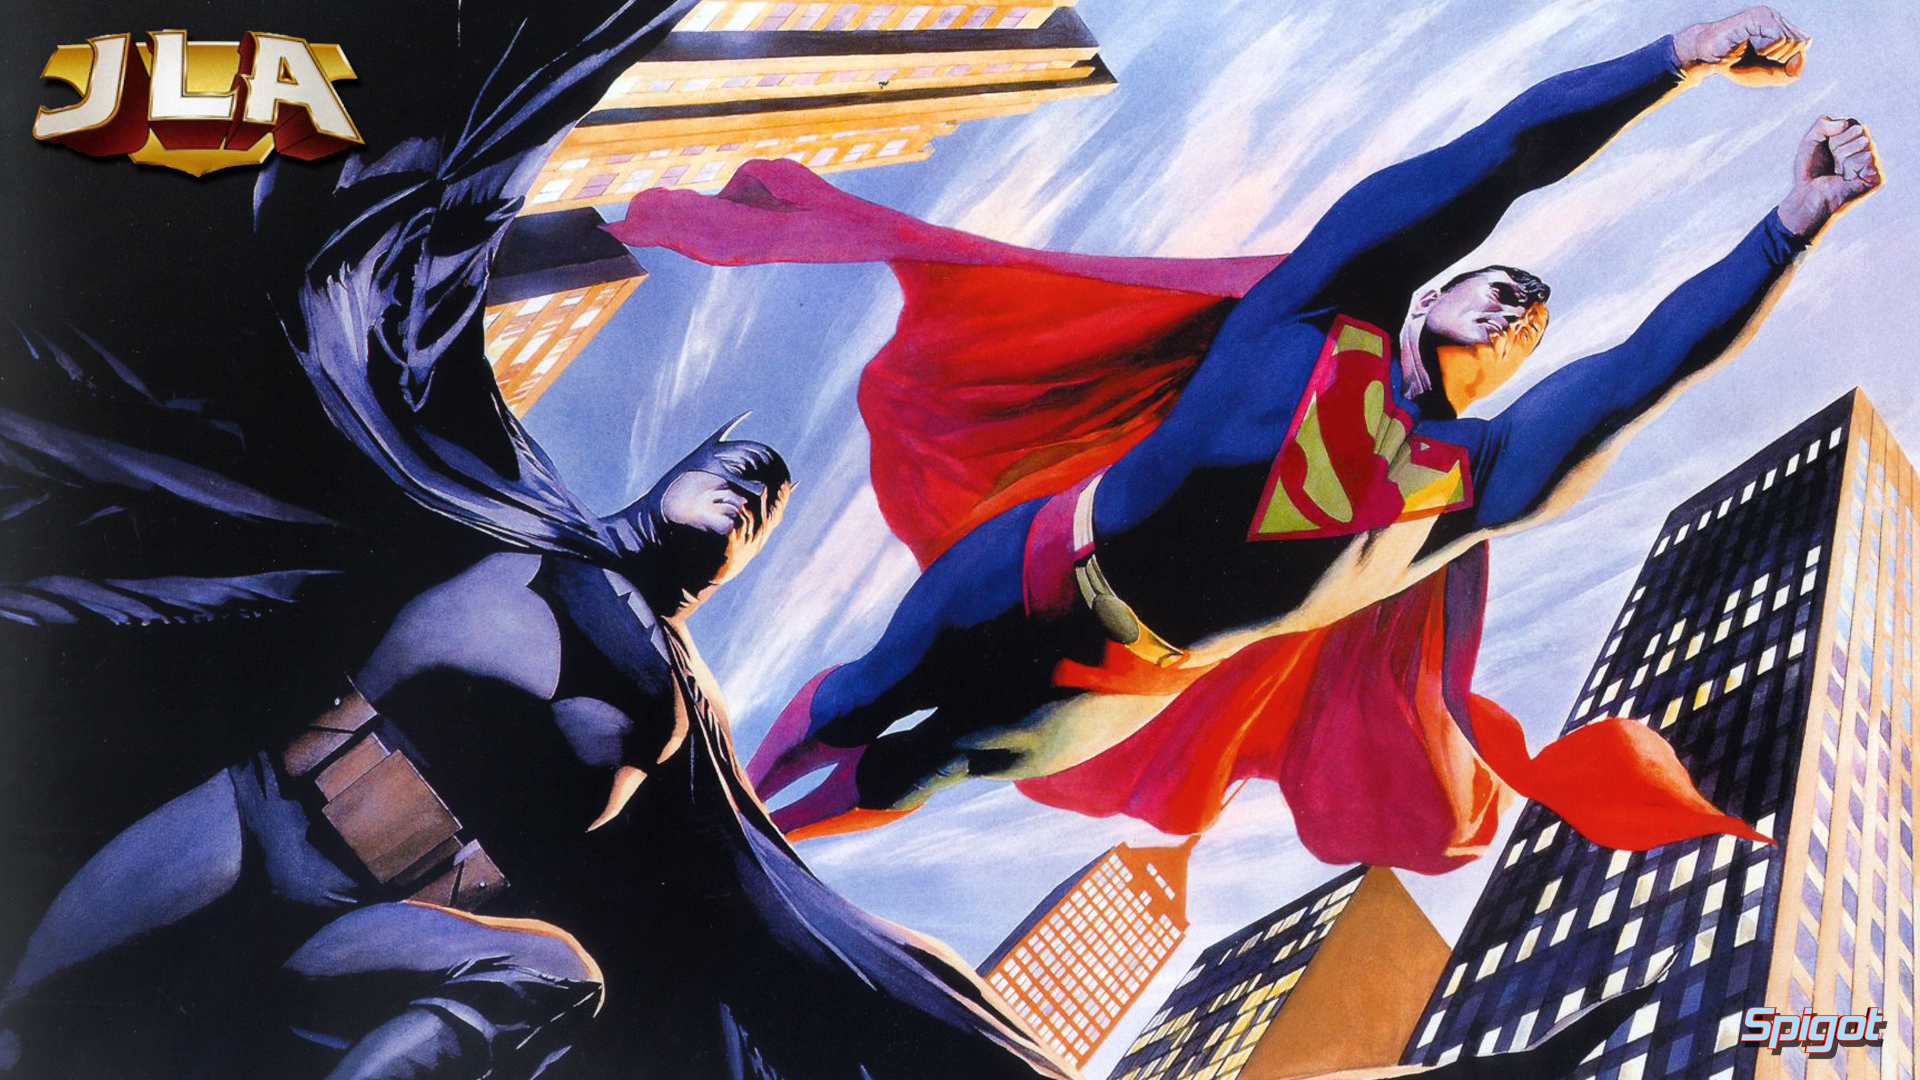 More justice league wallpapers george spigots blog yes more justice league wallpapers from art by alex ross voltagebd Gallery